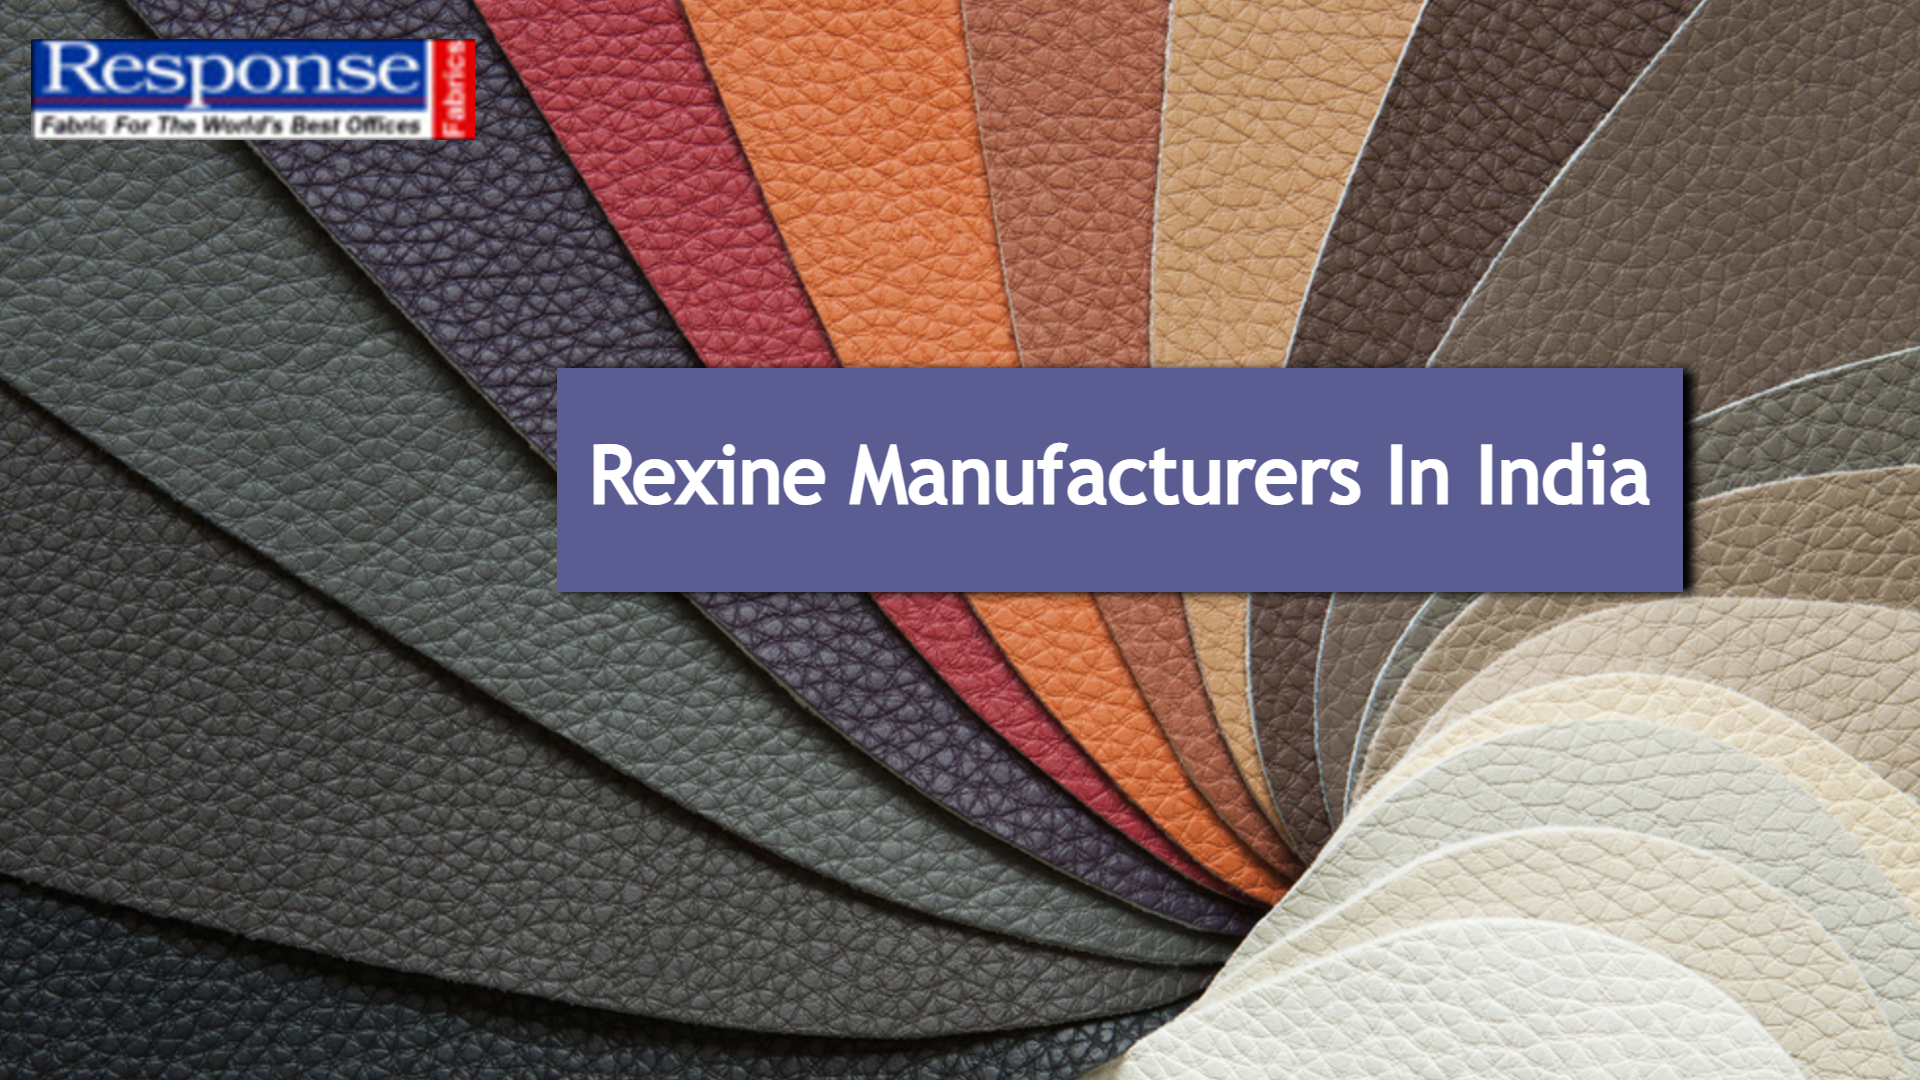 rexine manufacturers in india